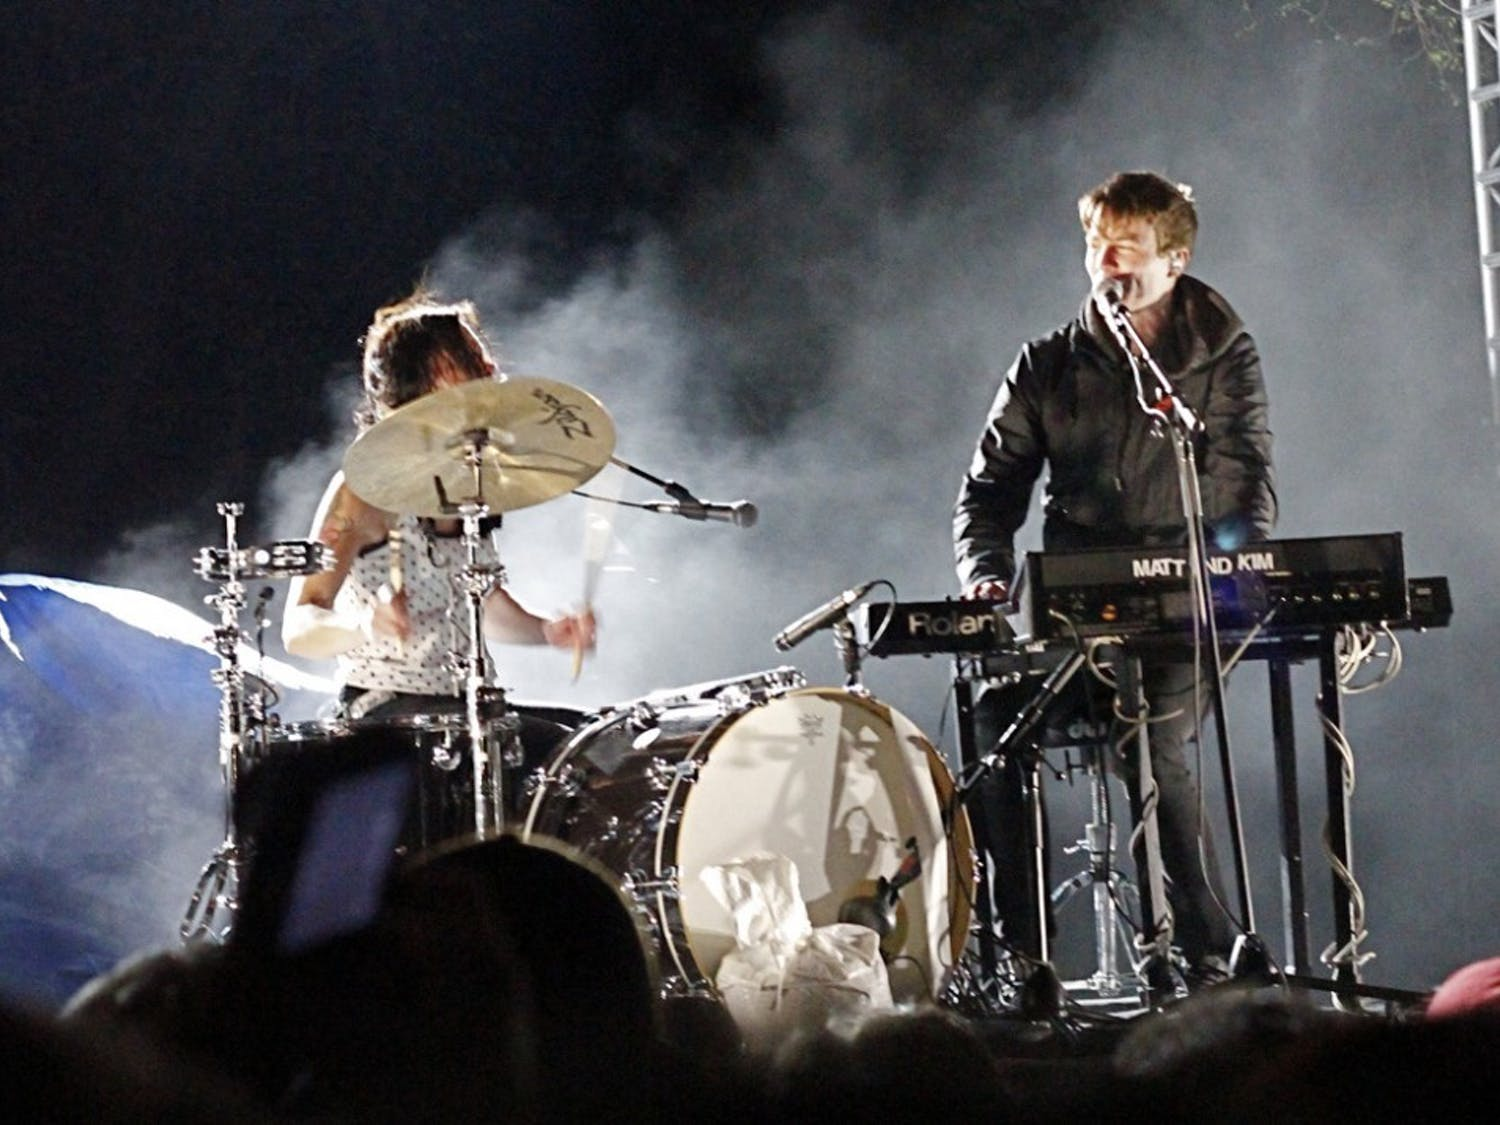 Rock duo Matt and Kim will perform at the Student Association's Fall Fest Concert Series. The series will take place at the Center for the Arts on Sept 21, Oct 6 and Nov 10. Each show will highlight a specific genre.